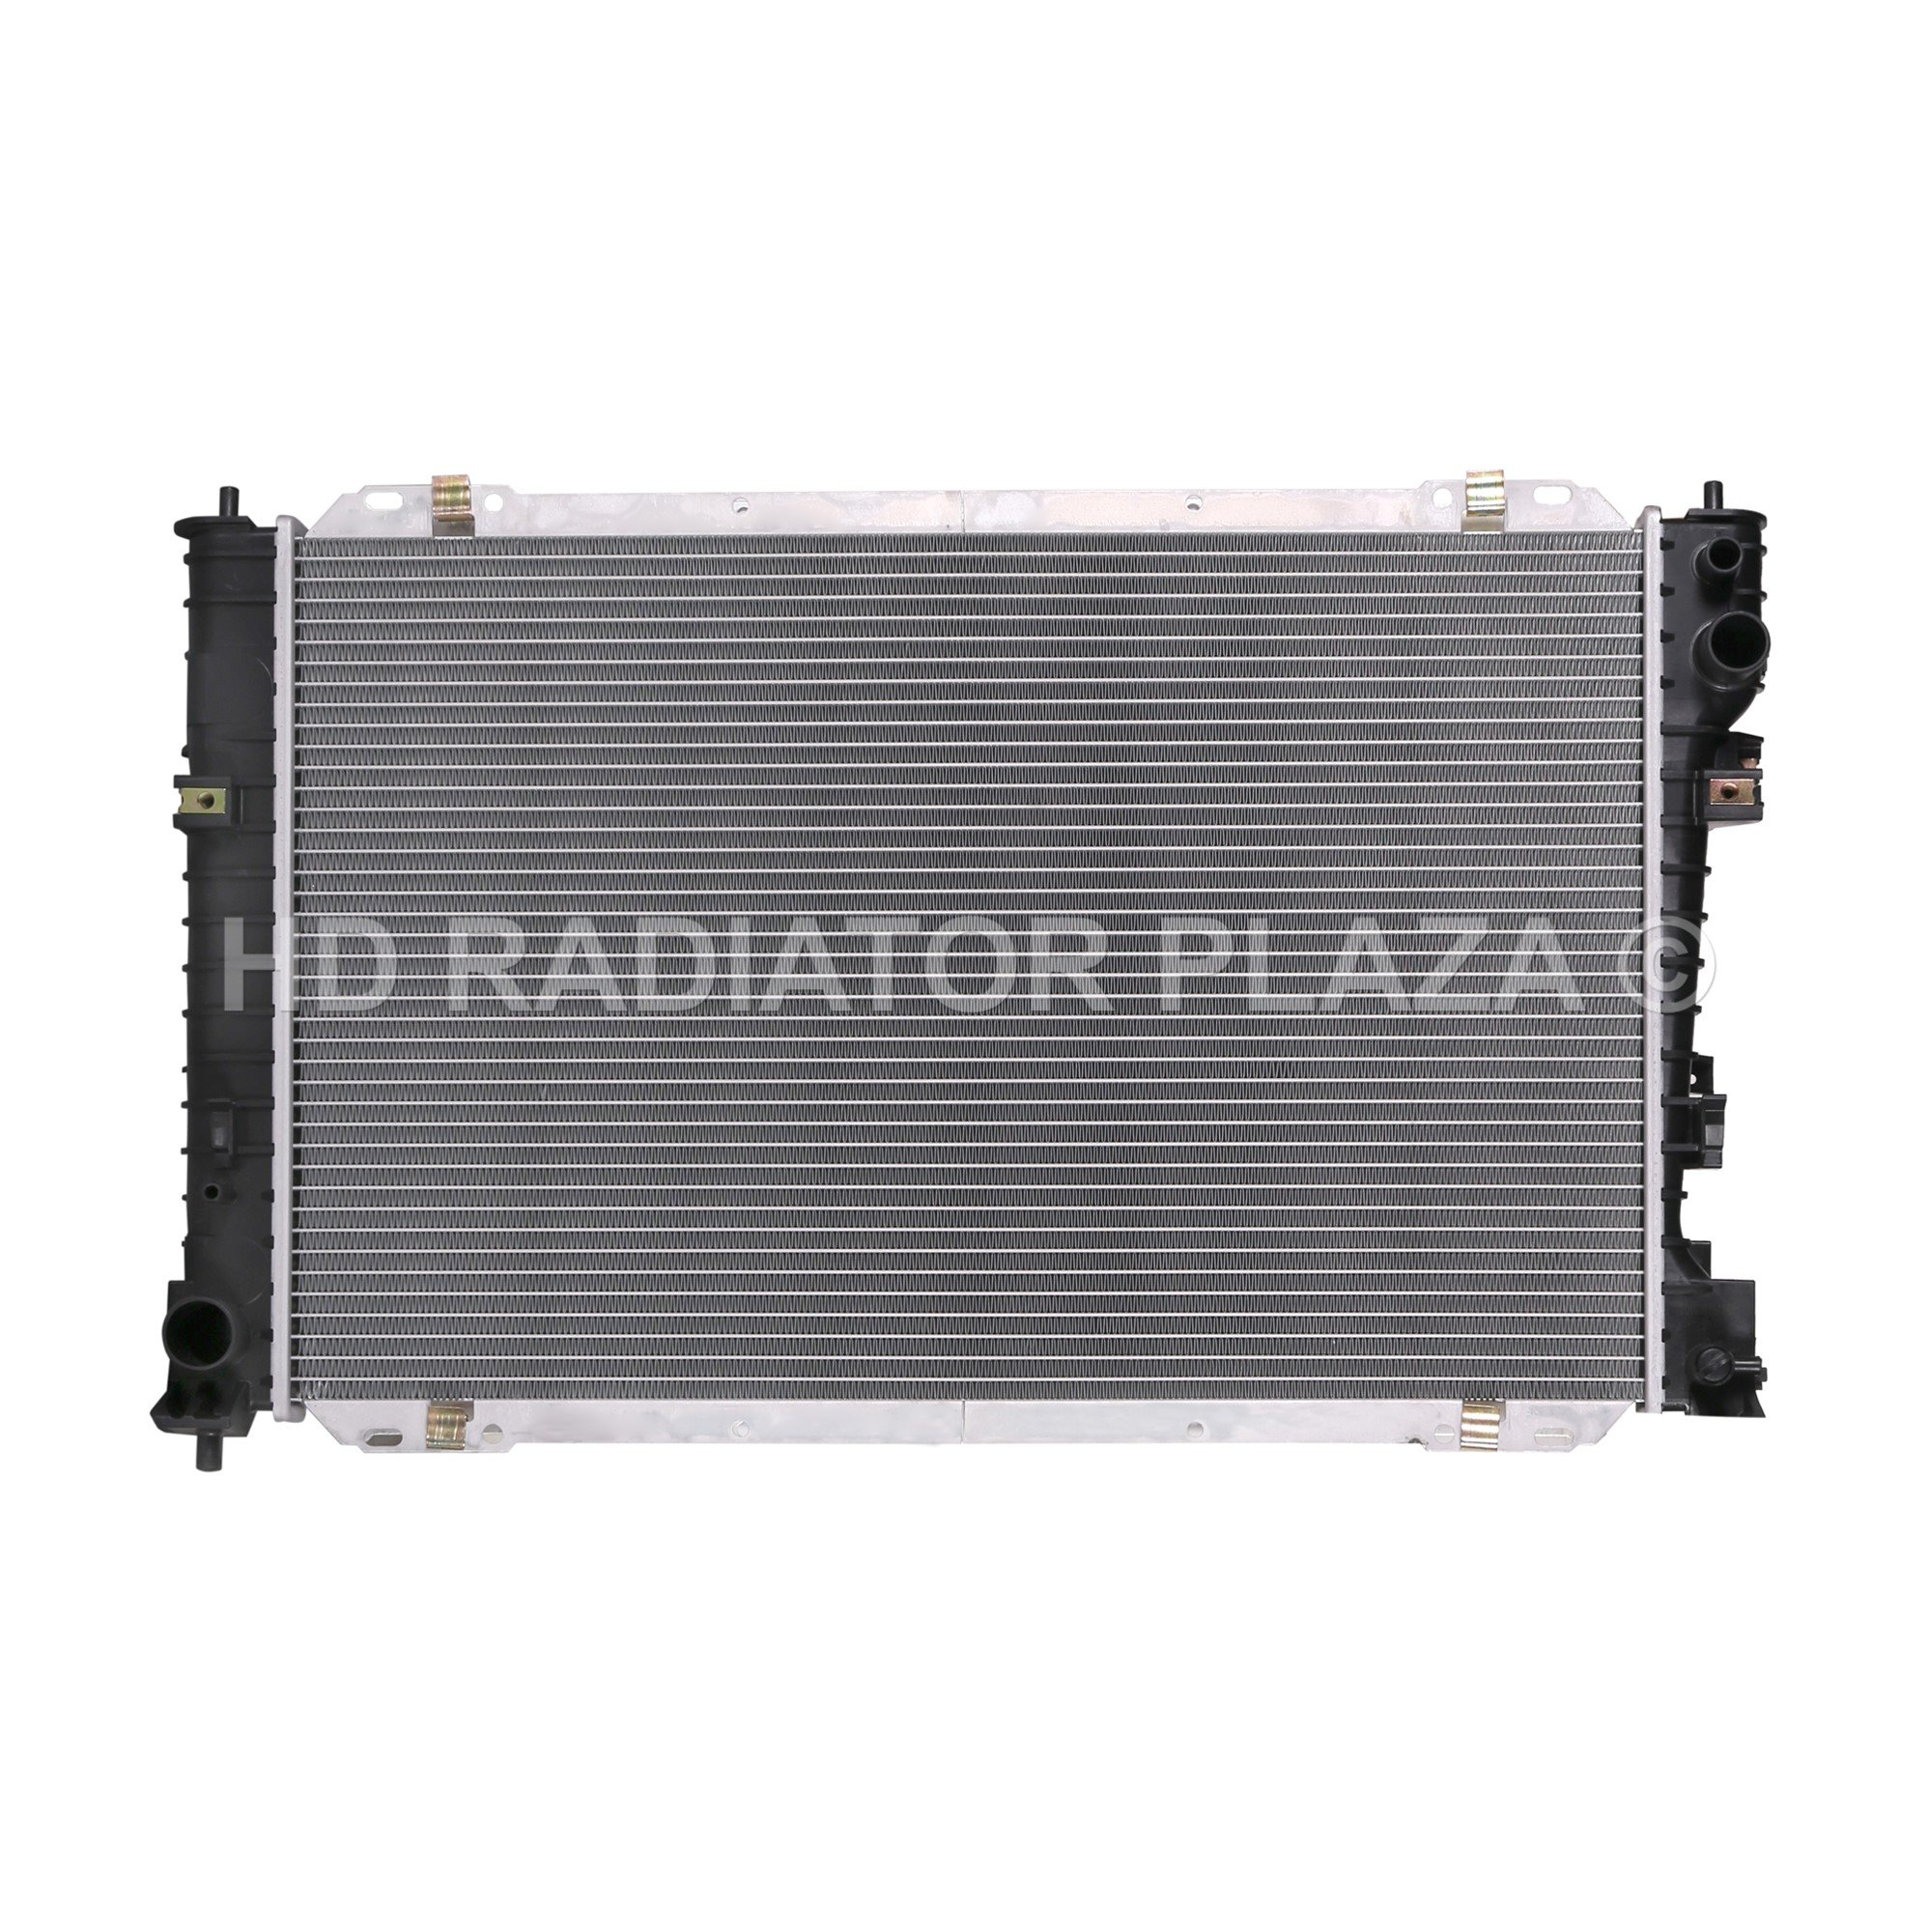 Radiator for 08-12 Ford Escape / Mazda Tribute